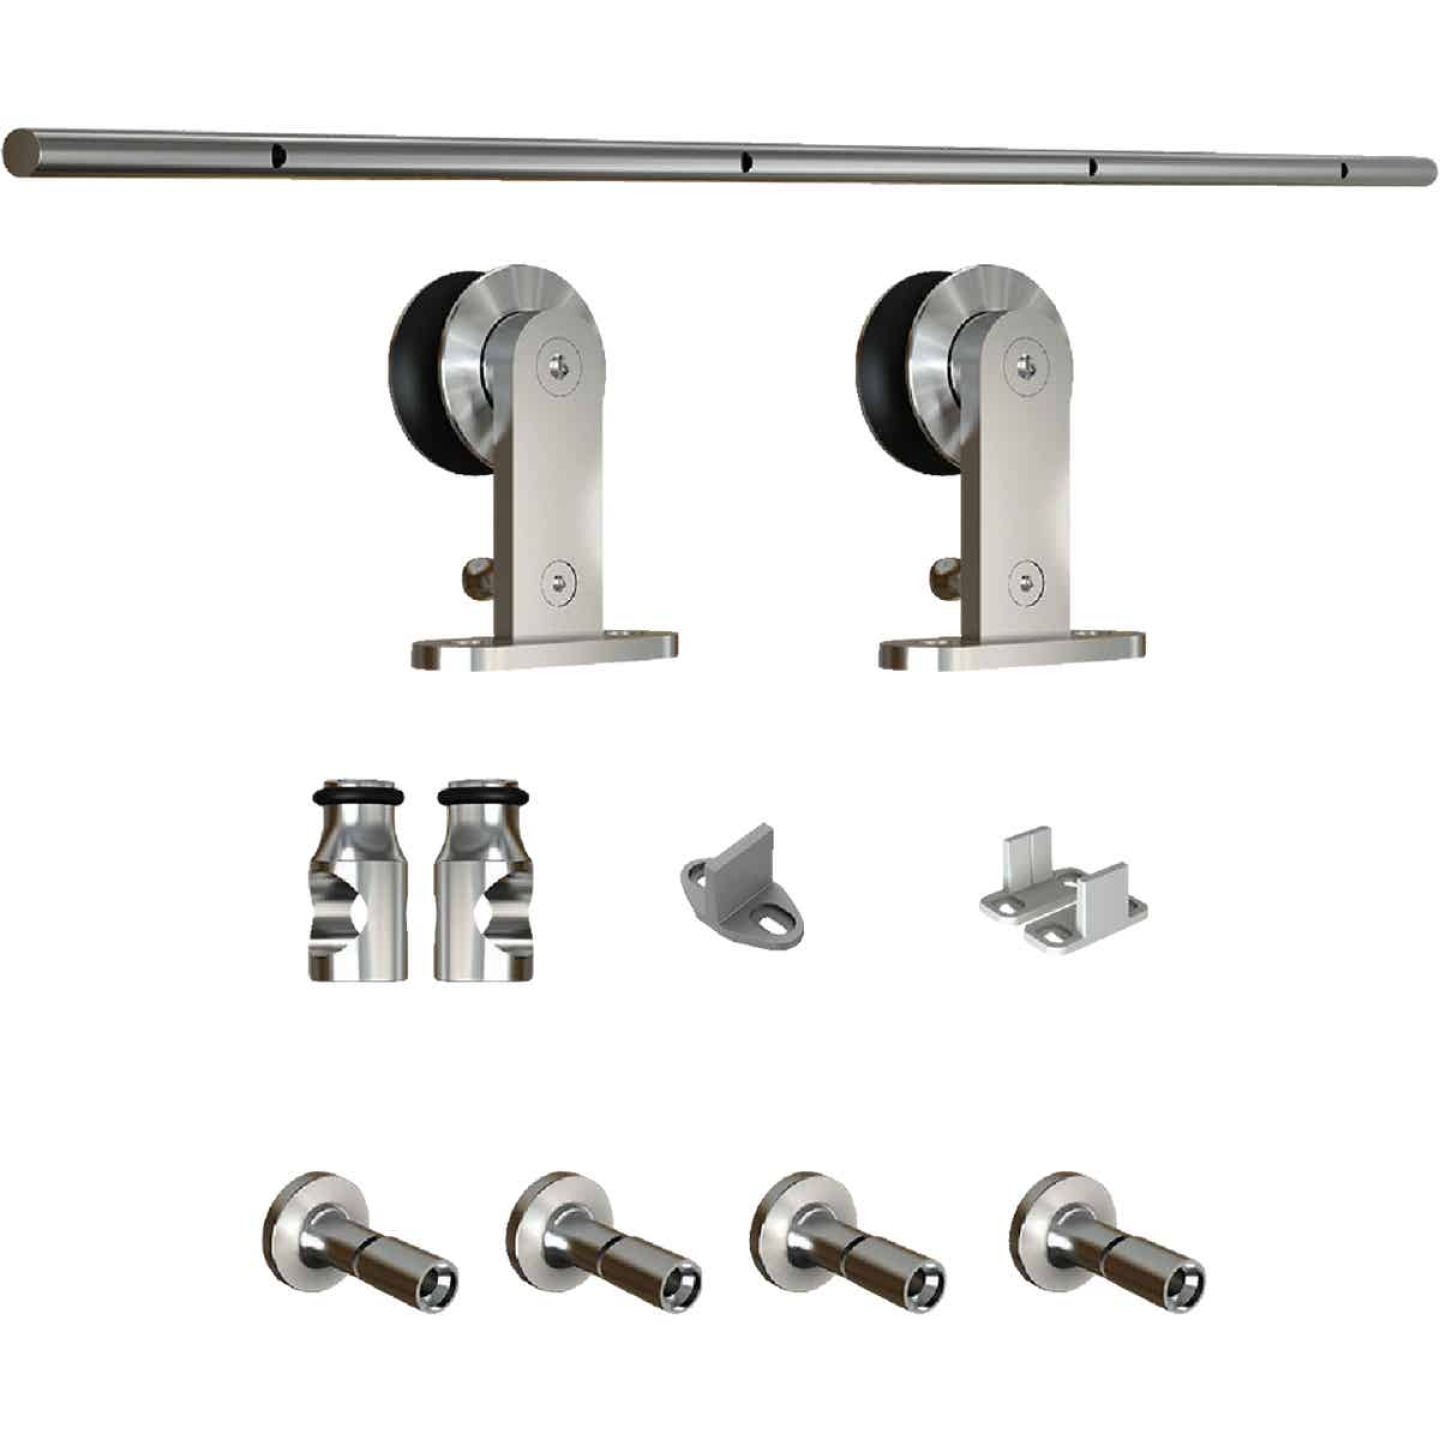 National Stainless Steel Steel Up to 200 Lb. Barn Door Track Hardware Kit Image 3